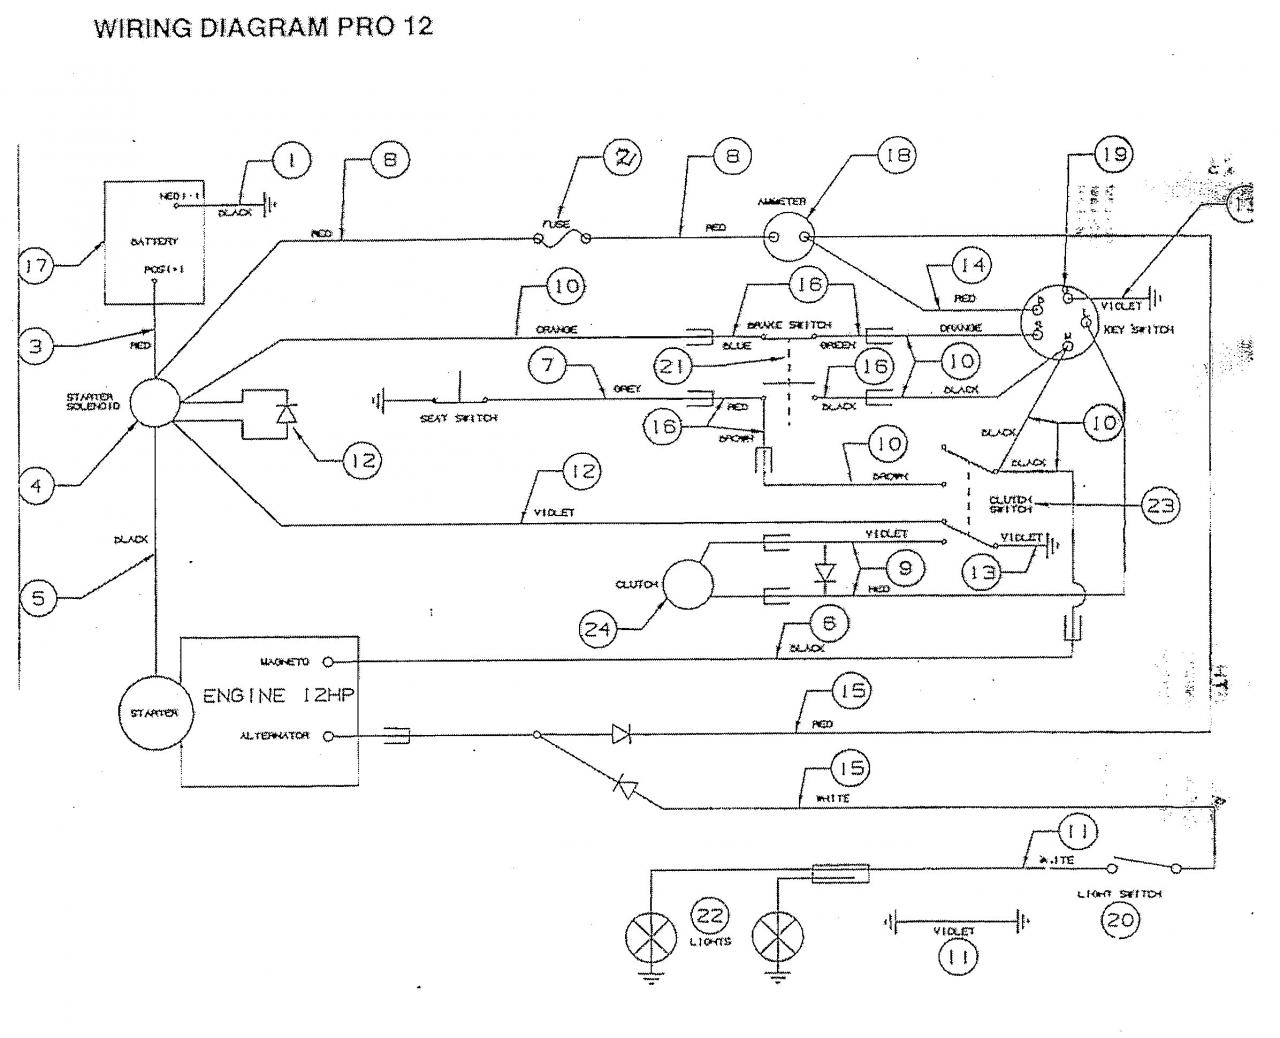 Hp Wiring Diagram Auto Electrical Yamaha Also Diesel Tractor 1956 Marine Ignition Switch Victa Pro With Tecumseh 13 Troubles